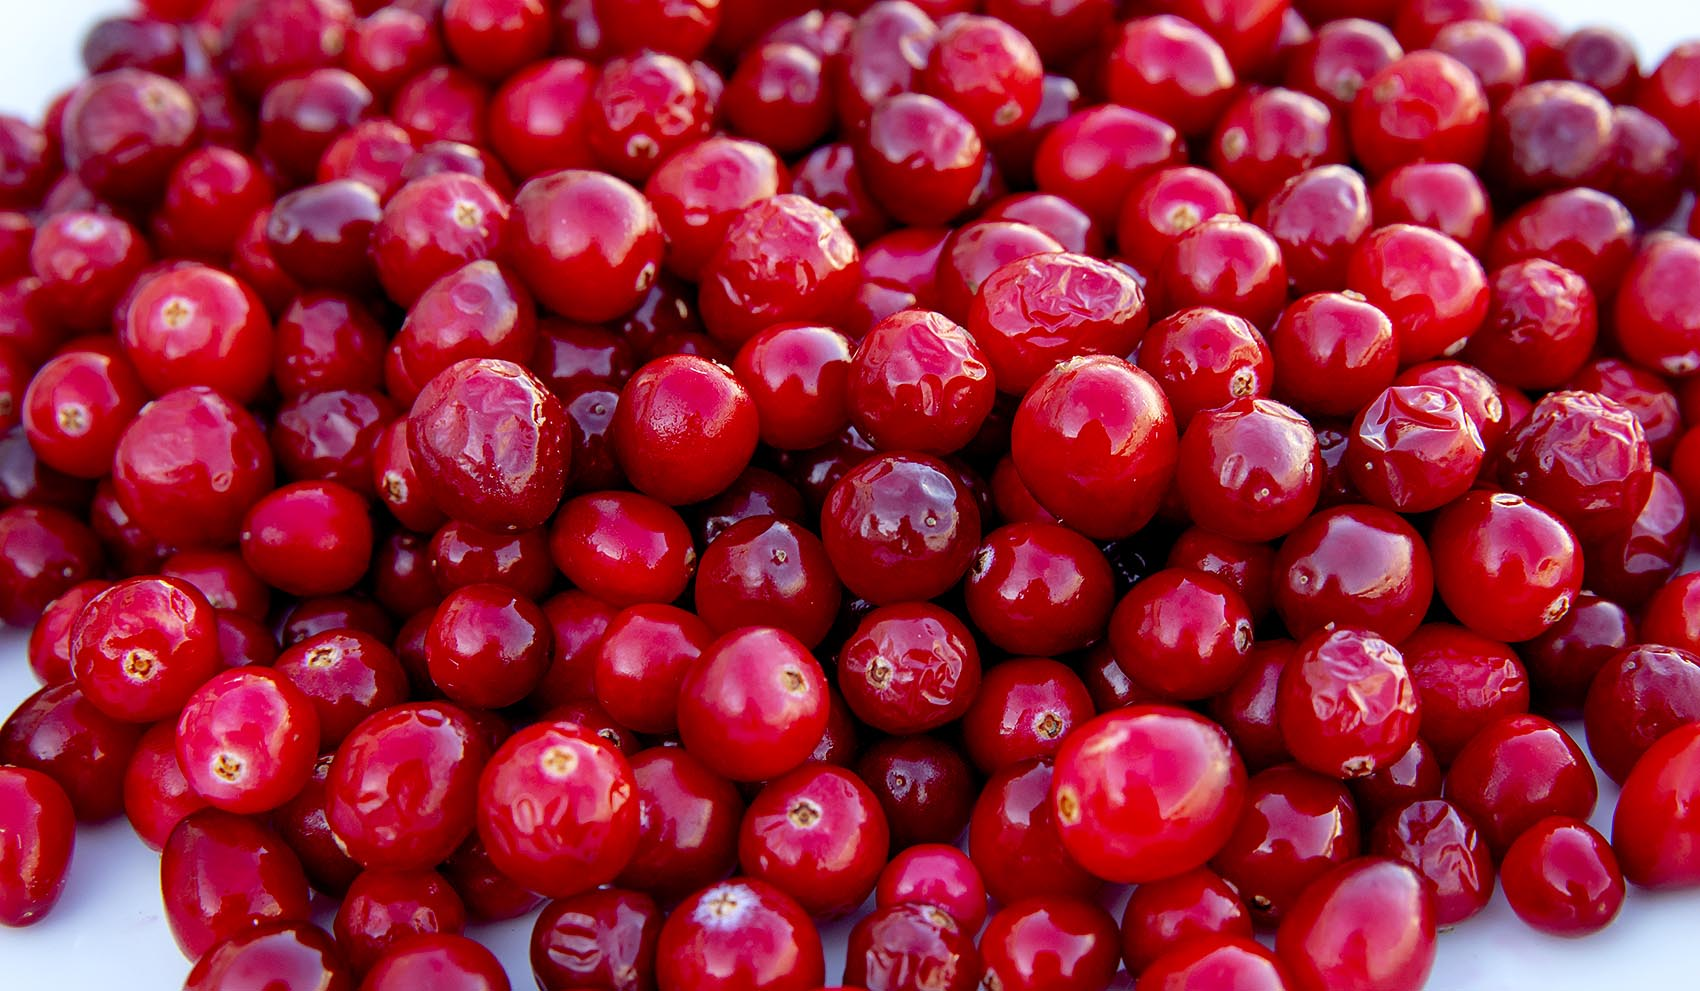 Truckers will haul millions of pounds of cranberries for Thanksgiving